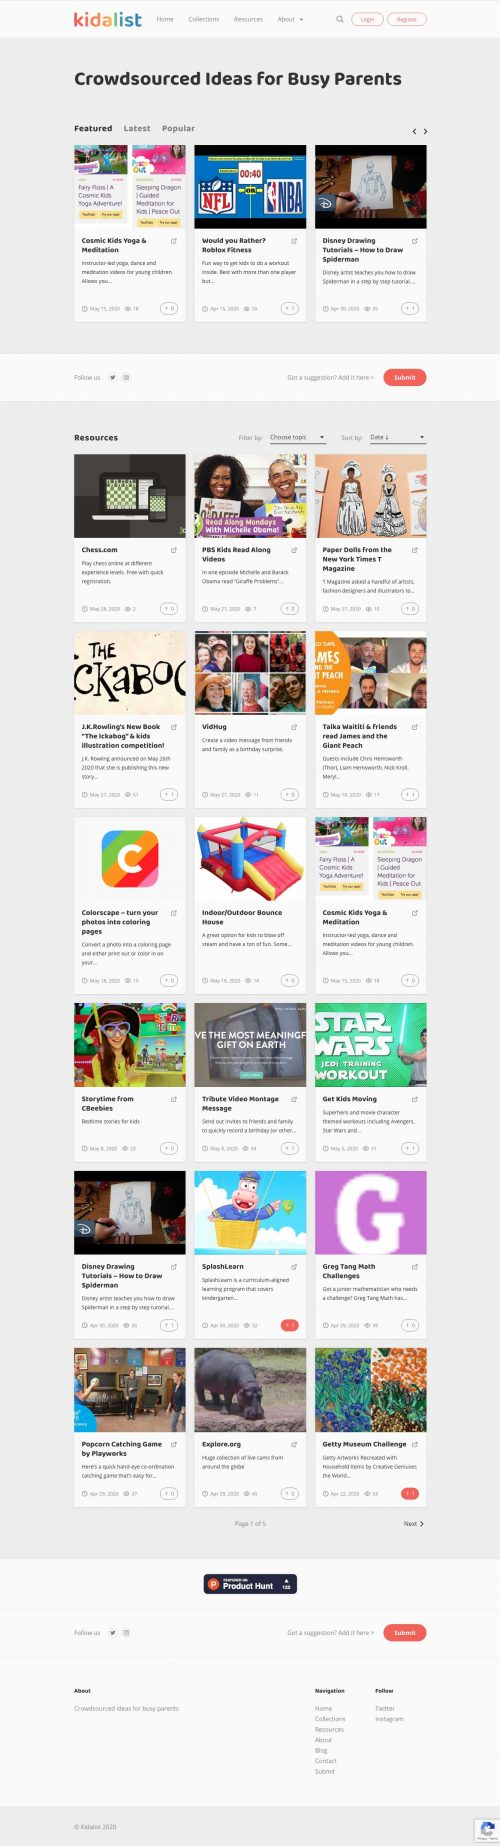 Screenshot of Kidalist.com website crowdsourcing ideas for busy parents